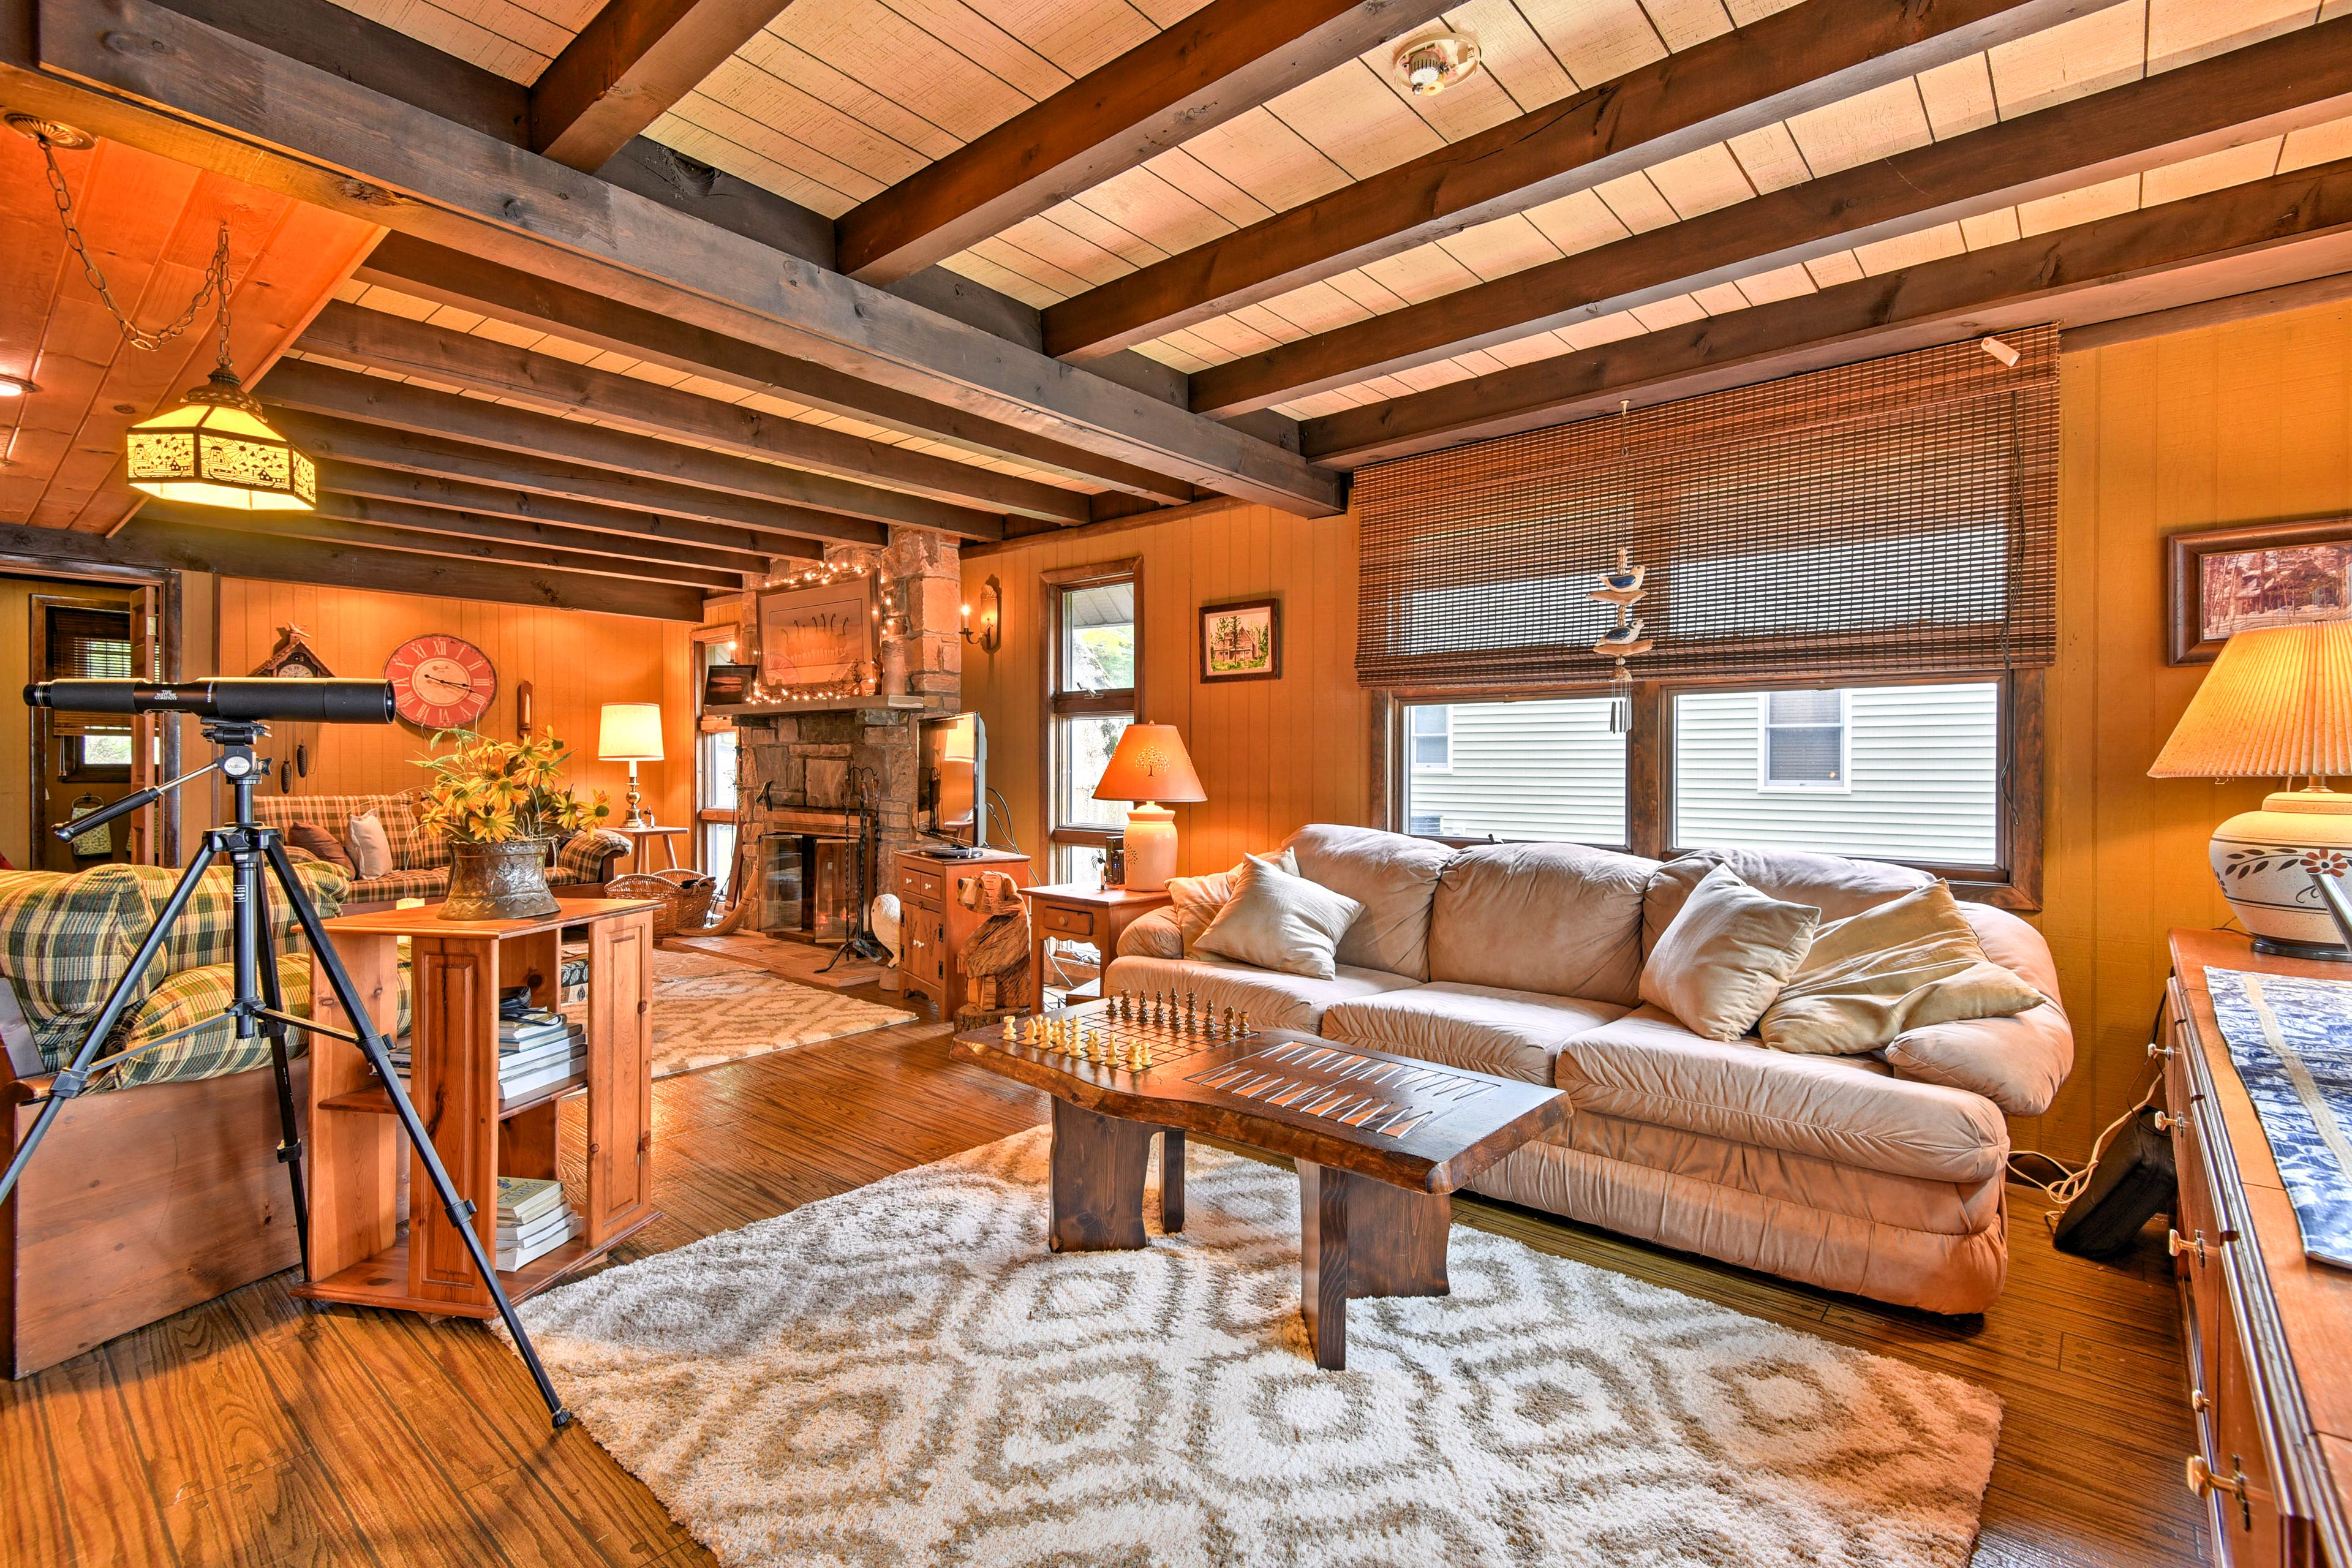 The cozy living space is perfect for spending time with family.